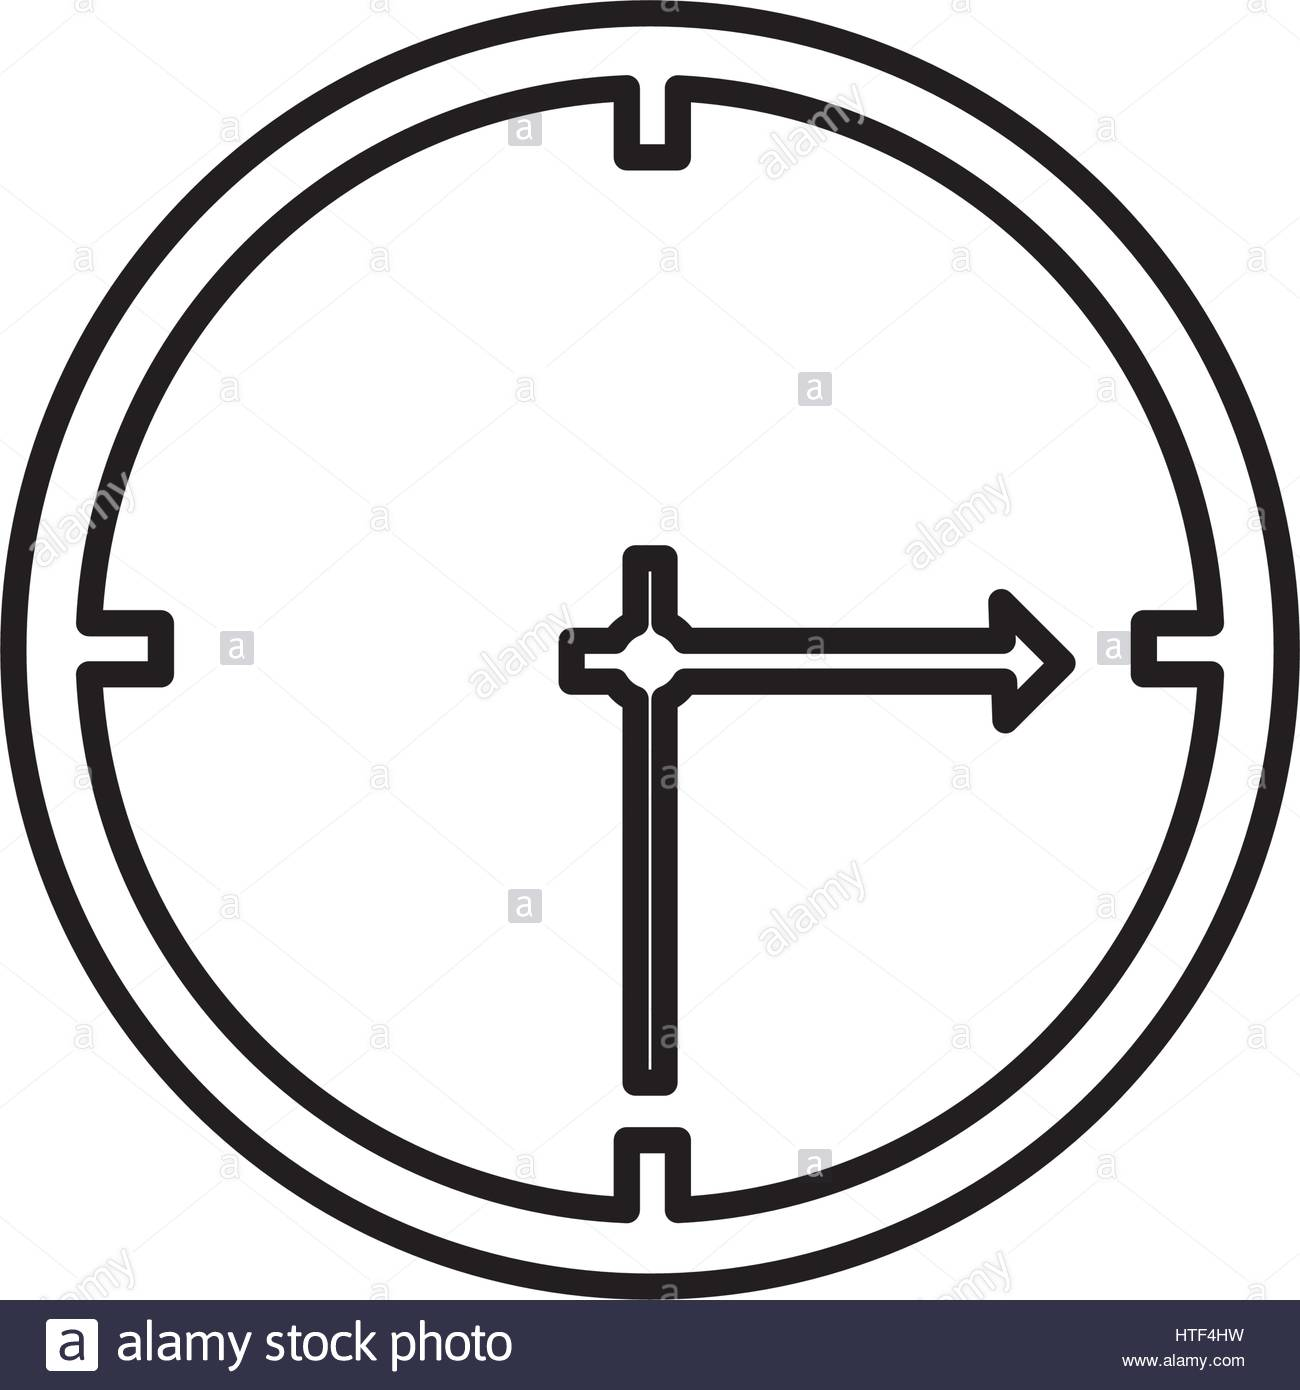 1300x1390 Silhouette Wall Clock Icon Stock Vector Art Amp Illustration, Vector